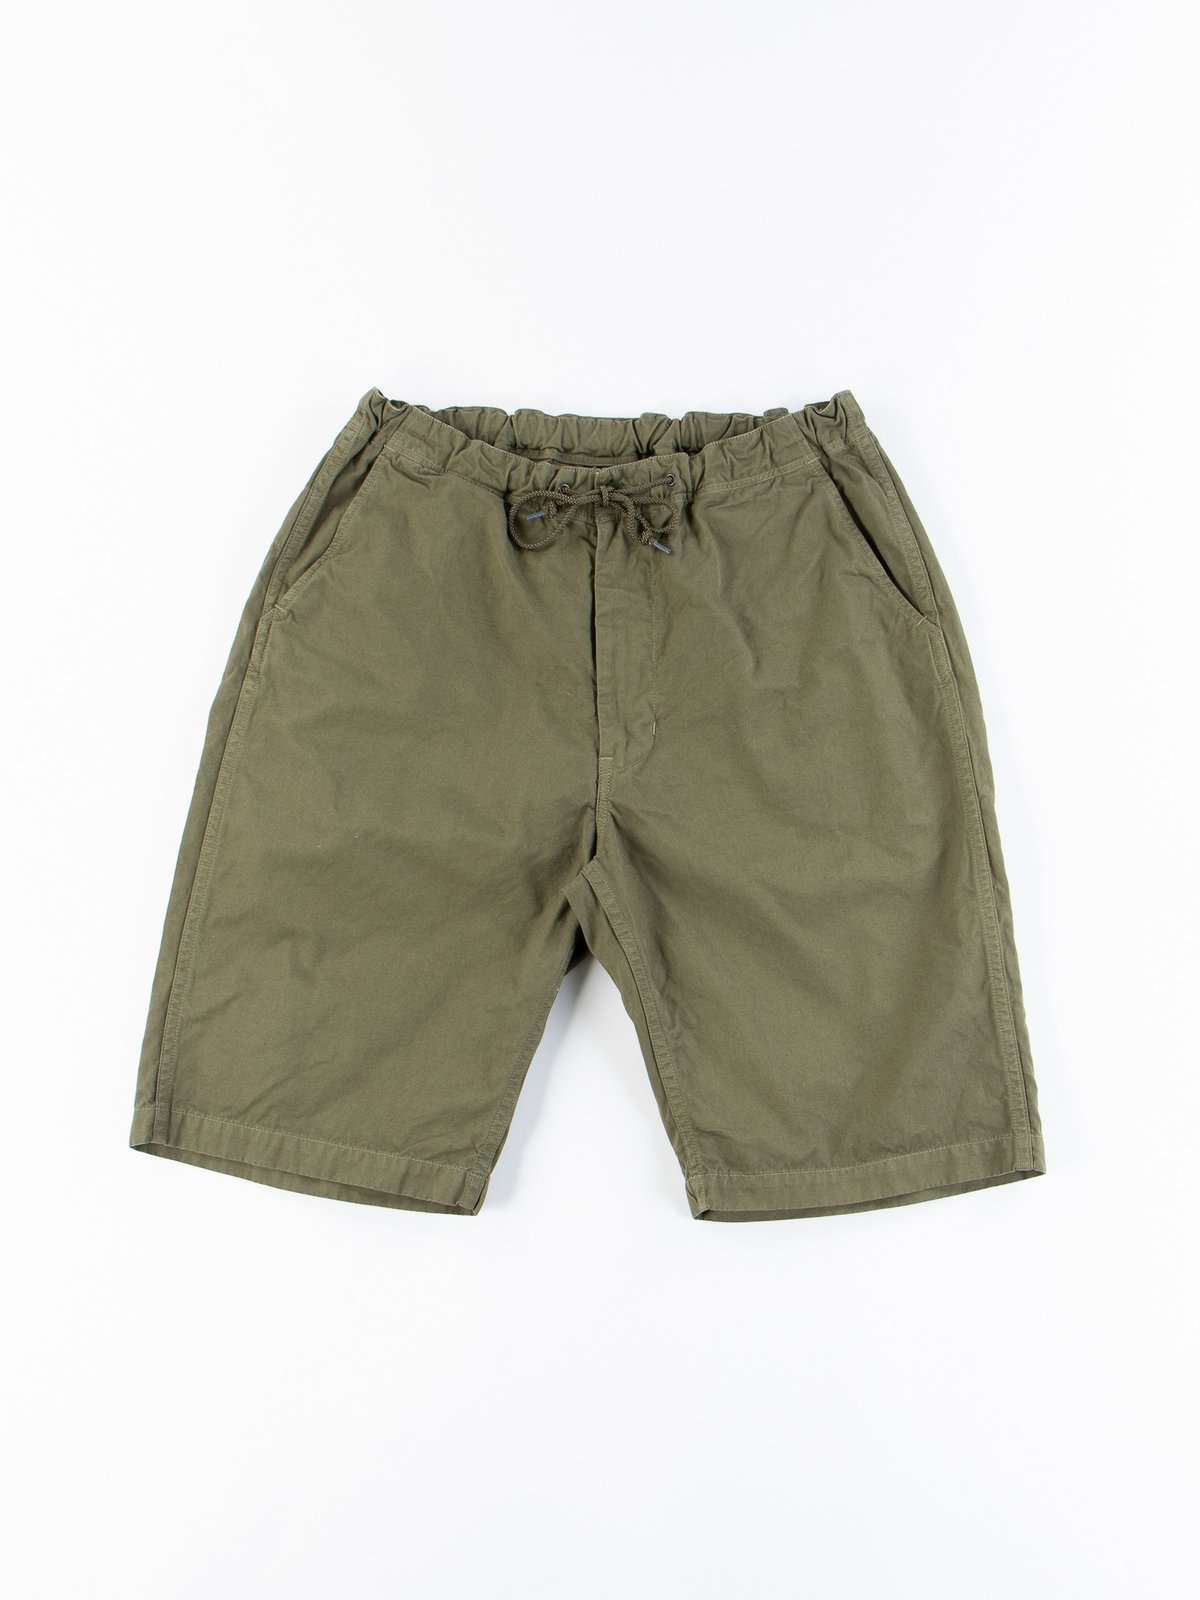 Army Overdyed Poplin TBB Mill Short - Image 1